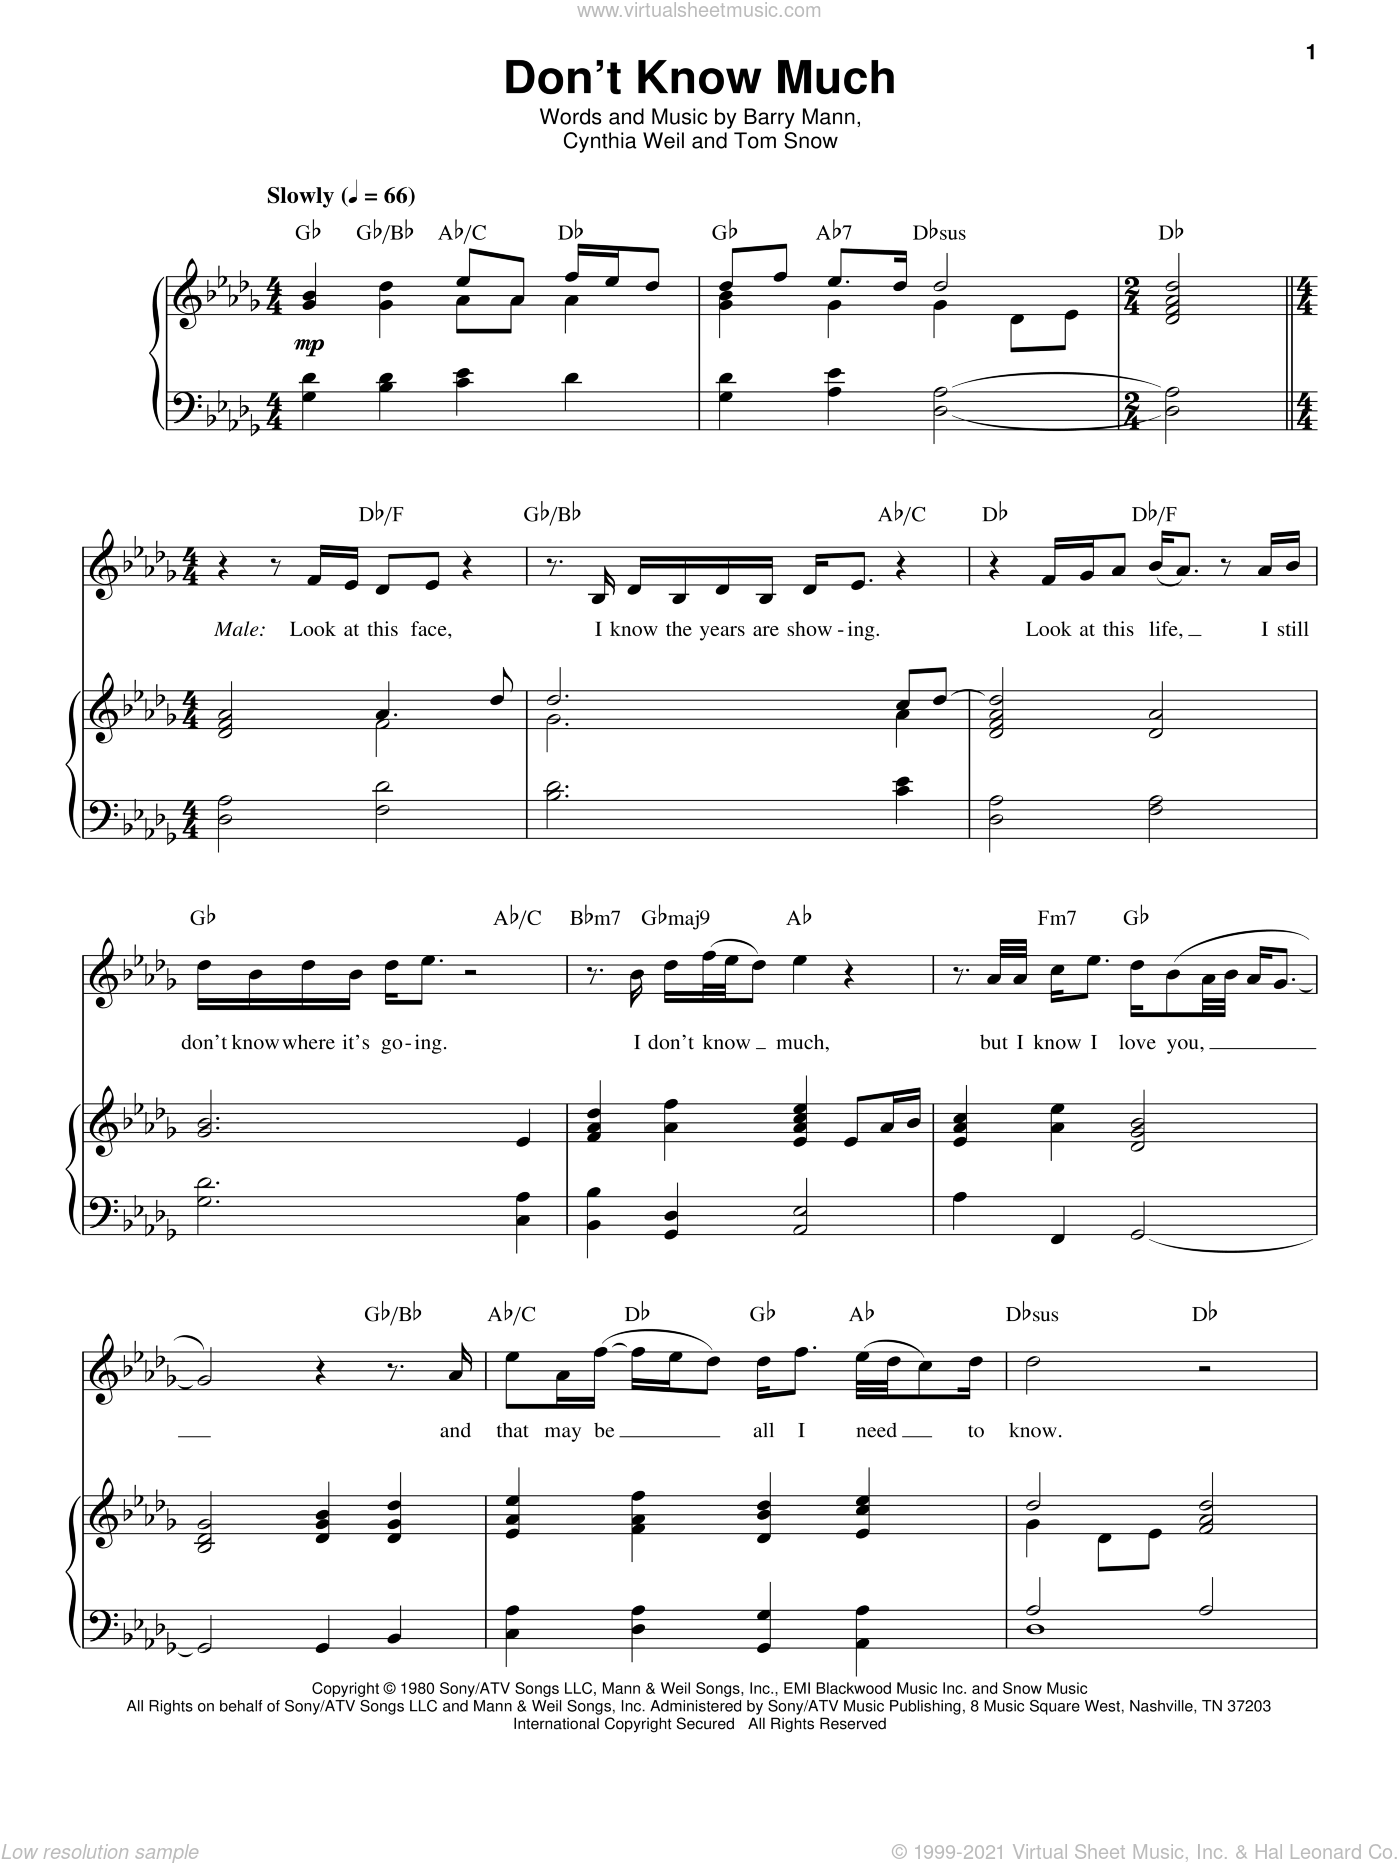 Don't Know Much sheet music for voice and piano by Aaron Neville and Linda Ronstadt, Aaron Neville, Linda Ronstadt, Linda Ronstadt and Aaron Neville, Barry Mann, Cynthia Weil and Tom Snow, wedding score, intermediate skill level